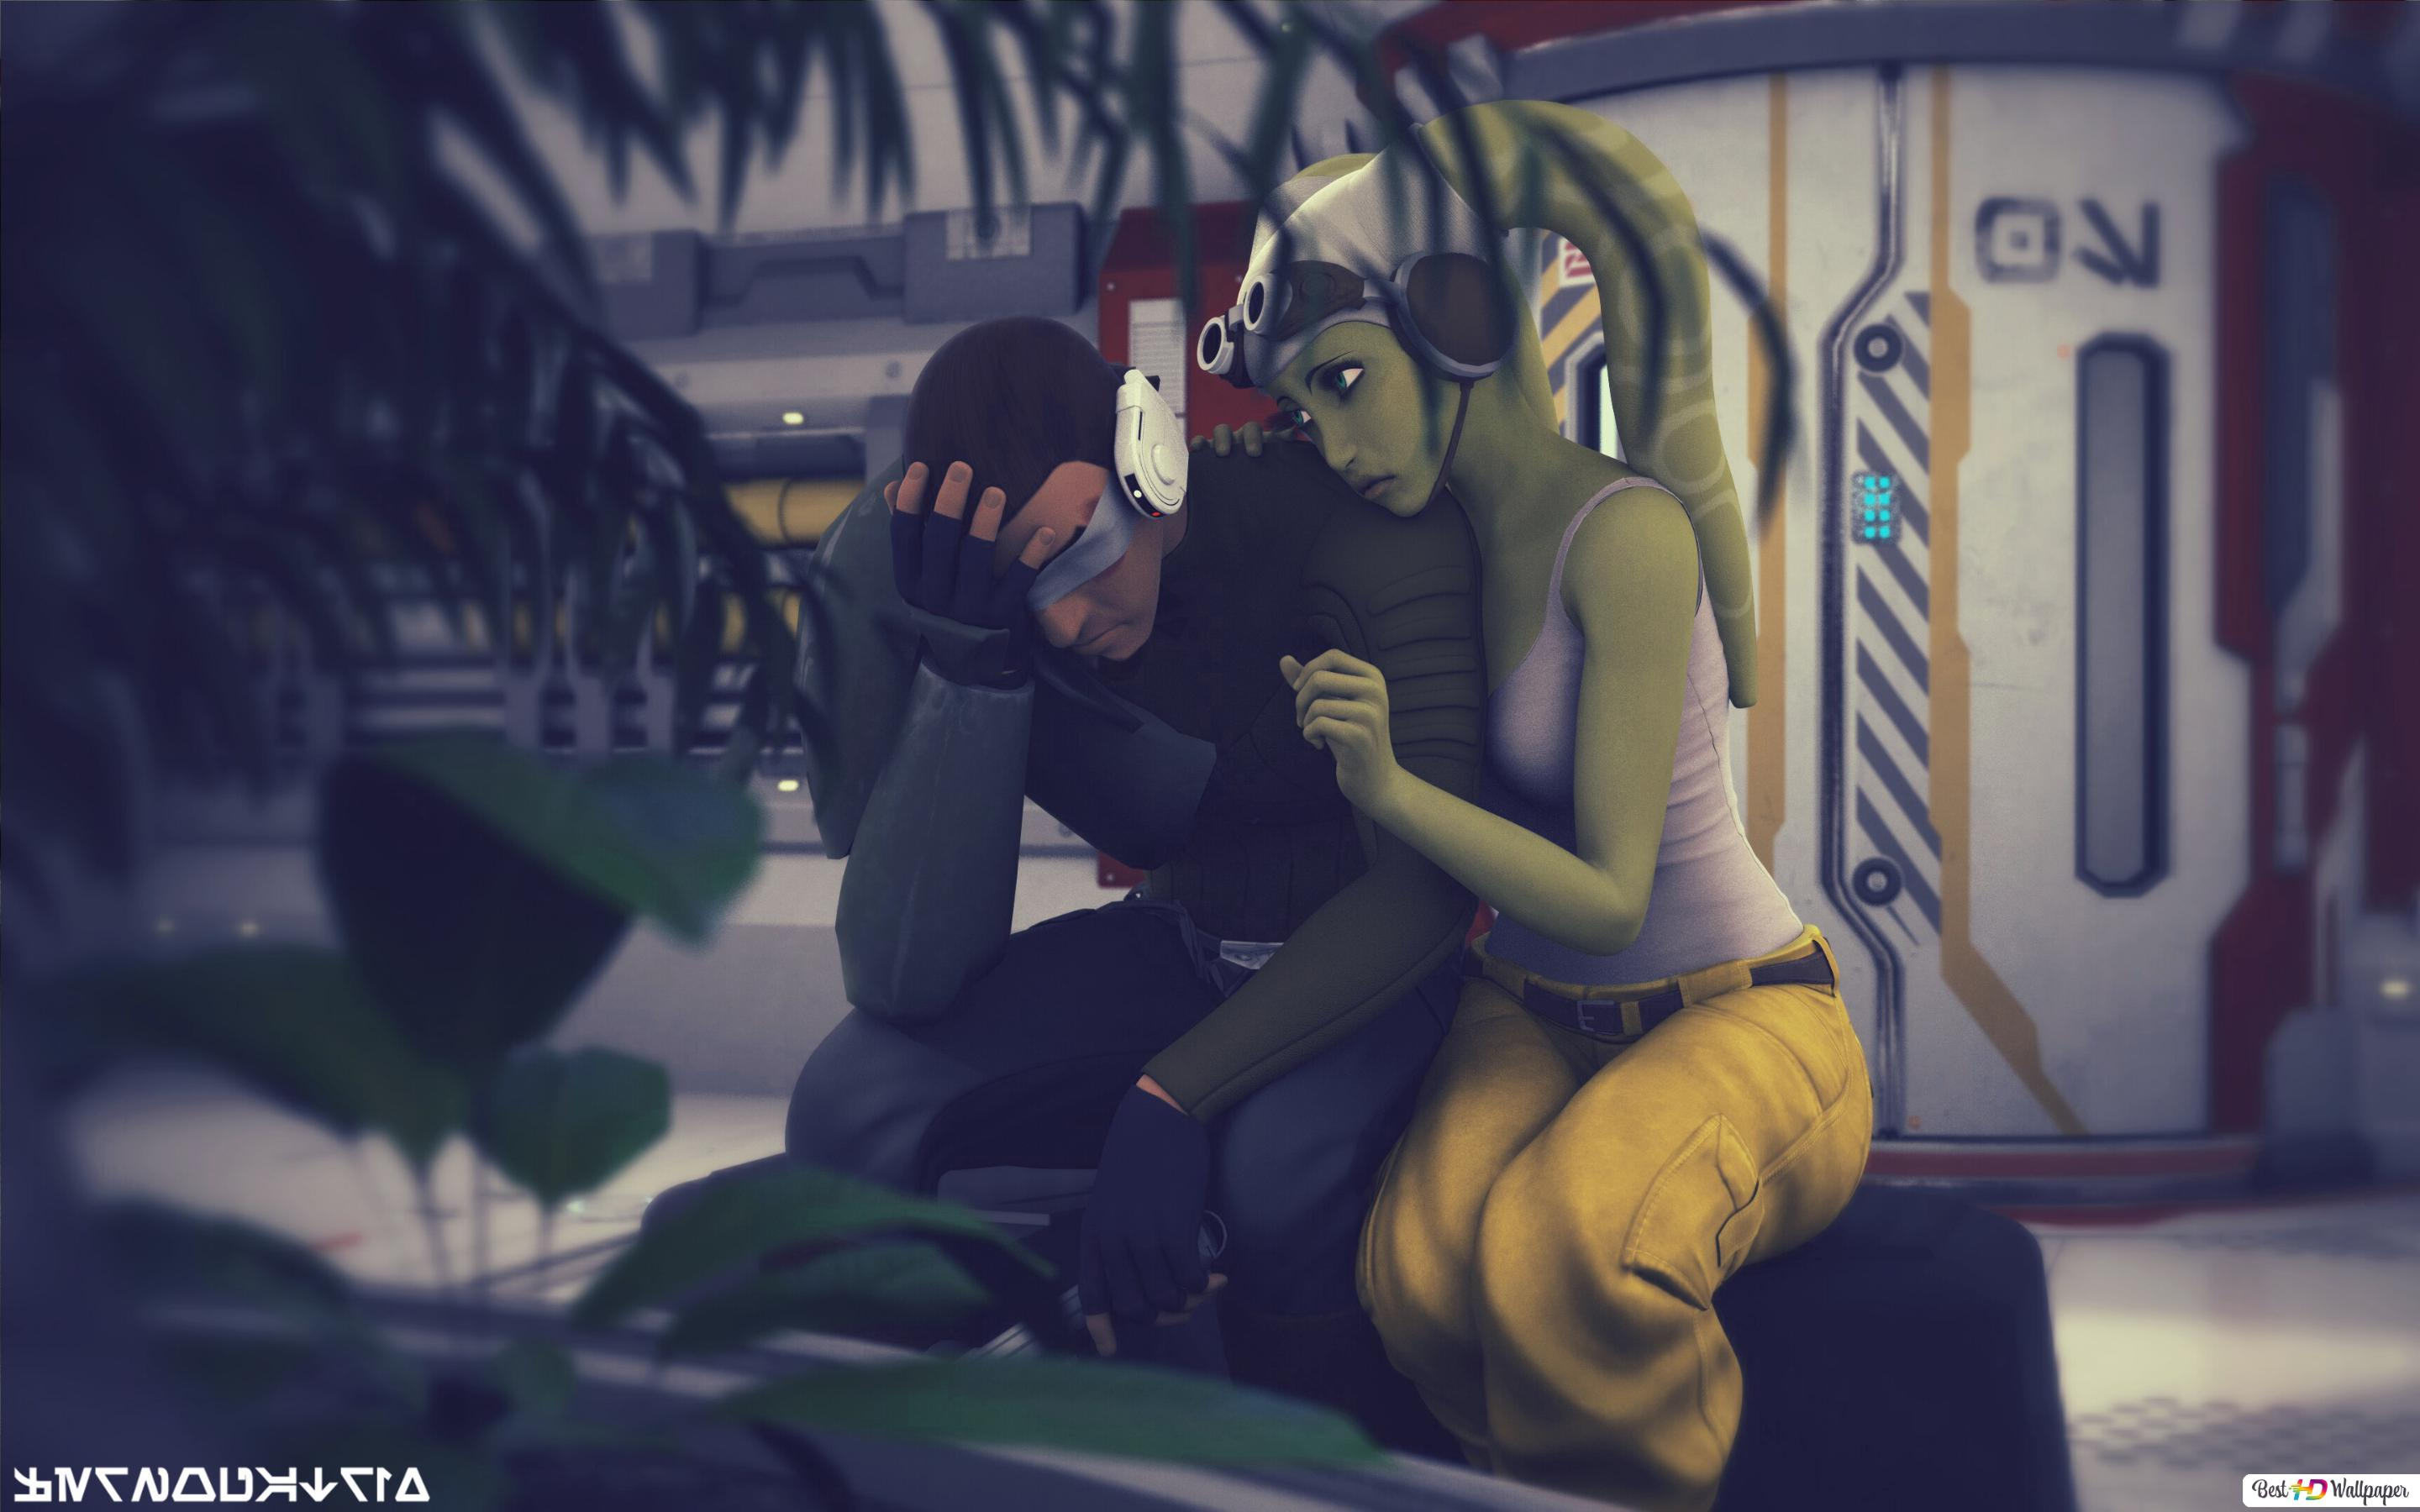 Star Wars Rebels Hera Syndulla And Kanan Jarrus Hd Wallpaper Download